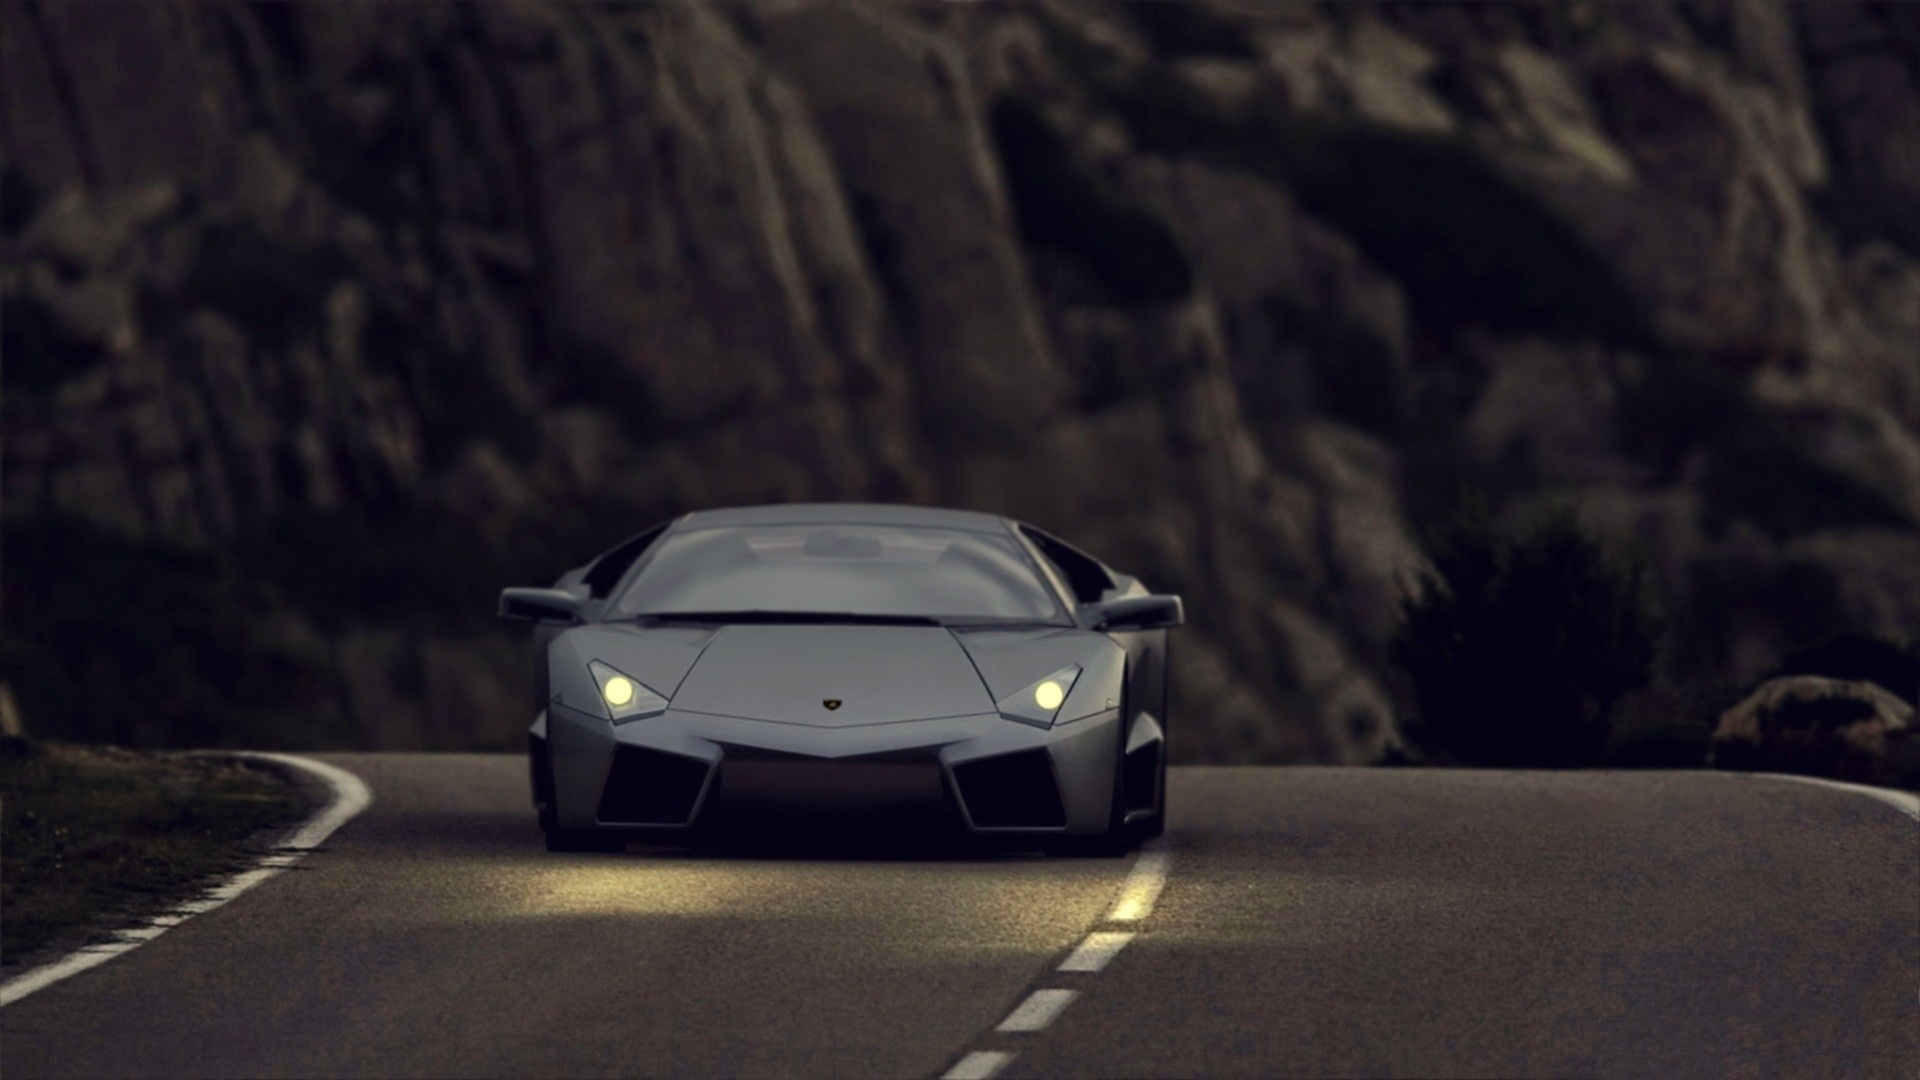 Lamborghini Dark Wallpapers Hd For Desktop